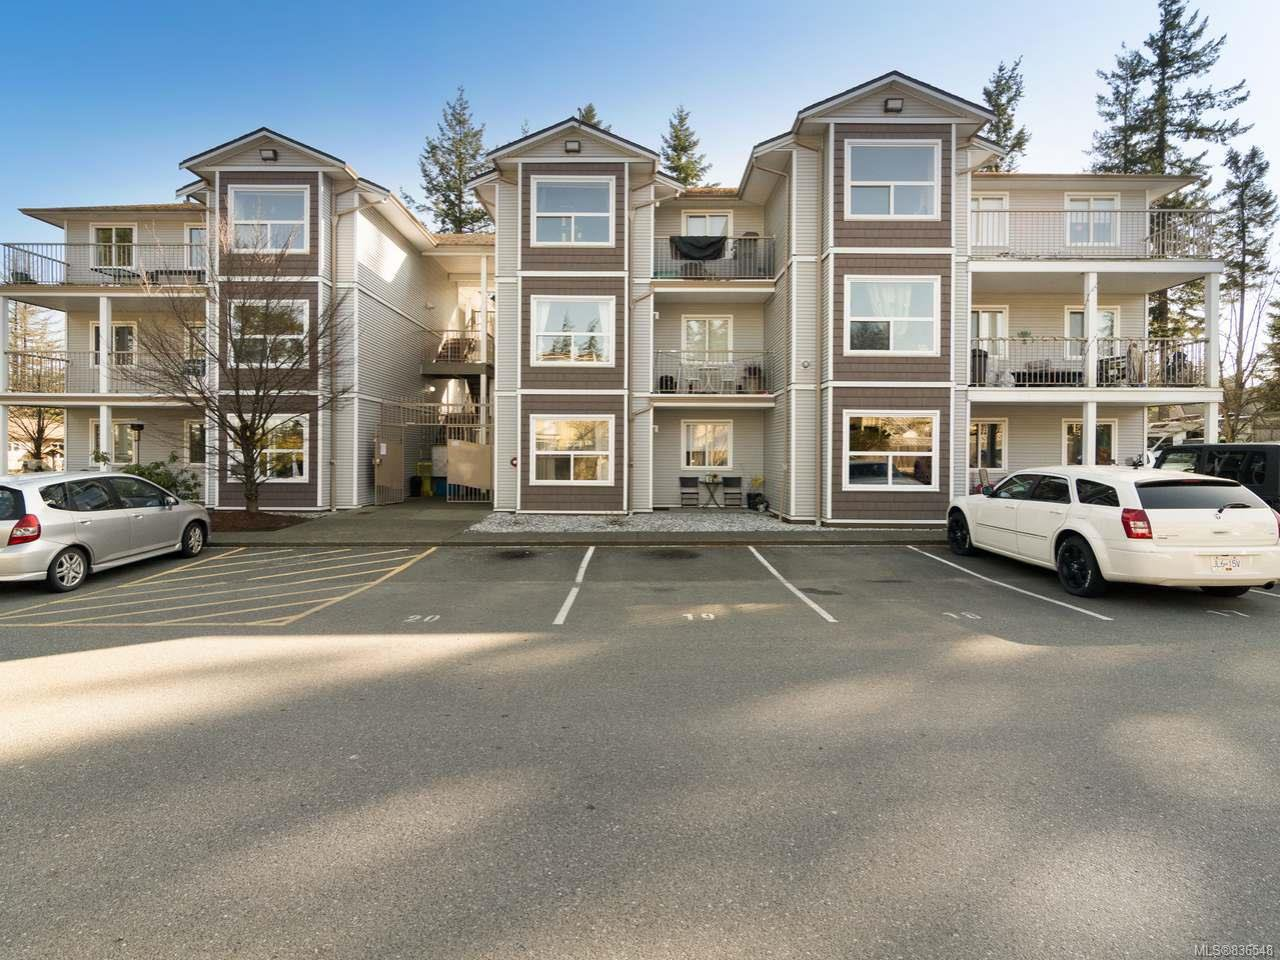 Main Photo: 106 262 Birch St in CAMPBELL RIVER: CR Campbell River Central Condo for sale (Campbell River)  : MLS®# 836548